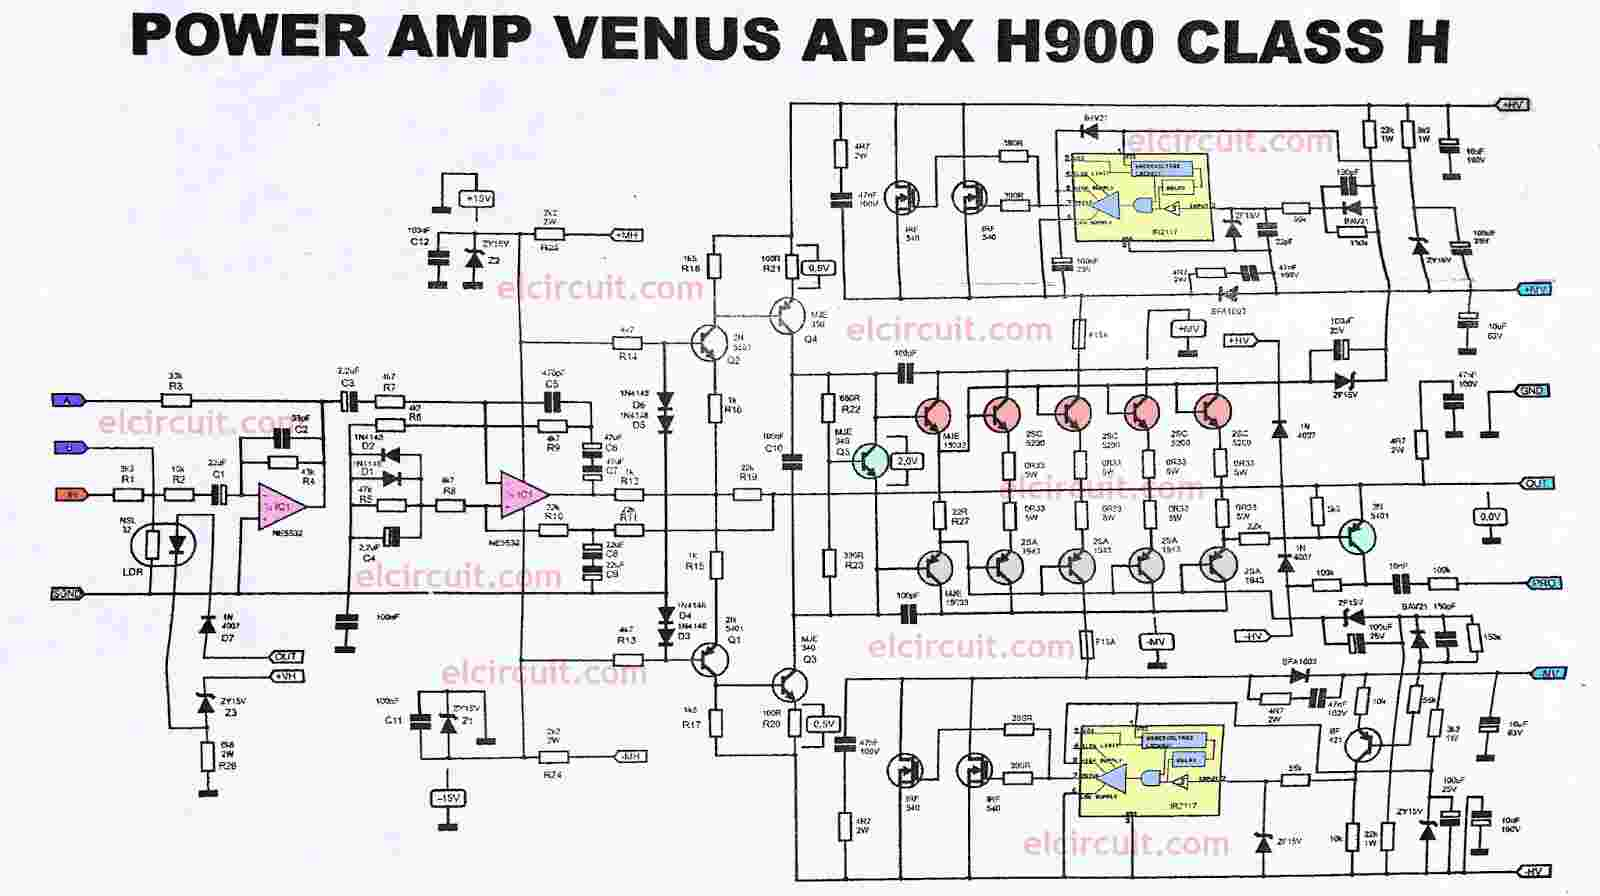 Circuit Power Amp Class D Excellent Electrical Wiring Diagram House Amplifier Electronic Circuits And Apex H900 Efficient Flat Powerful 1000w